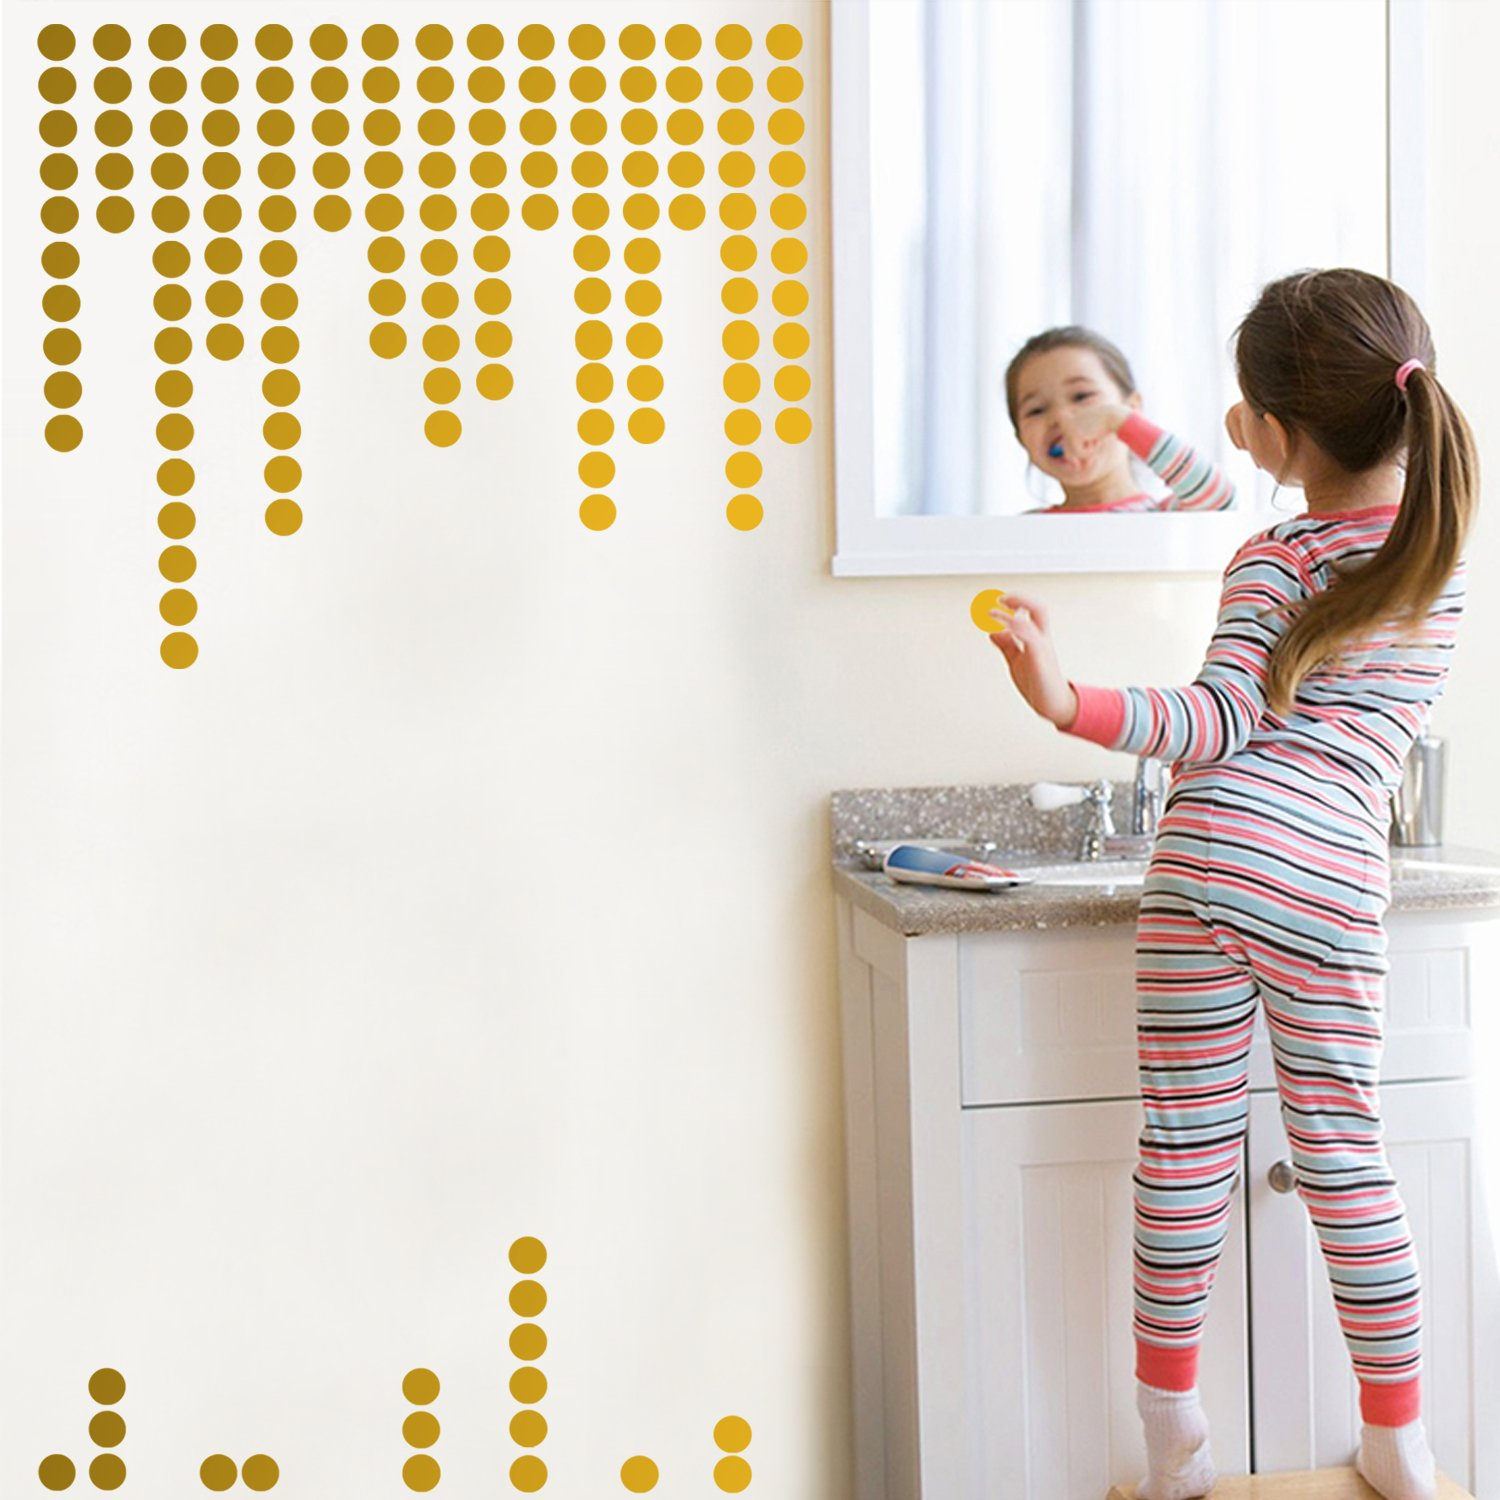 Gold Wall Decals Polka Dots Wall Stickers Vinyl Round Circle Art Stickers Removable Metallic Hanging Decor Decorations for Nursery Room ( 200 circles )